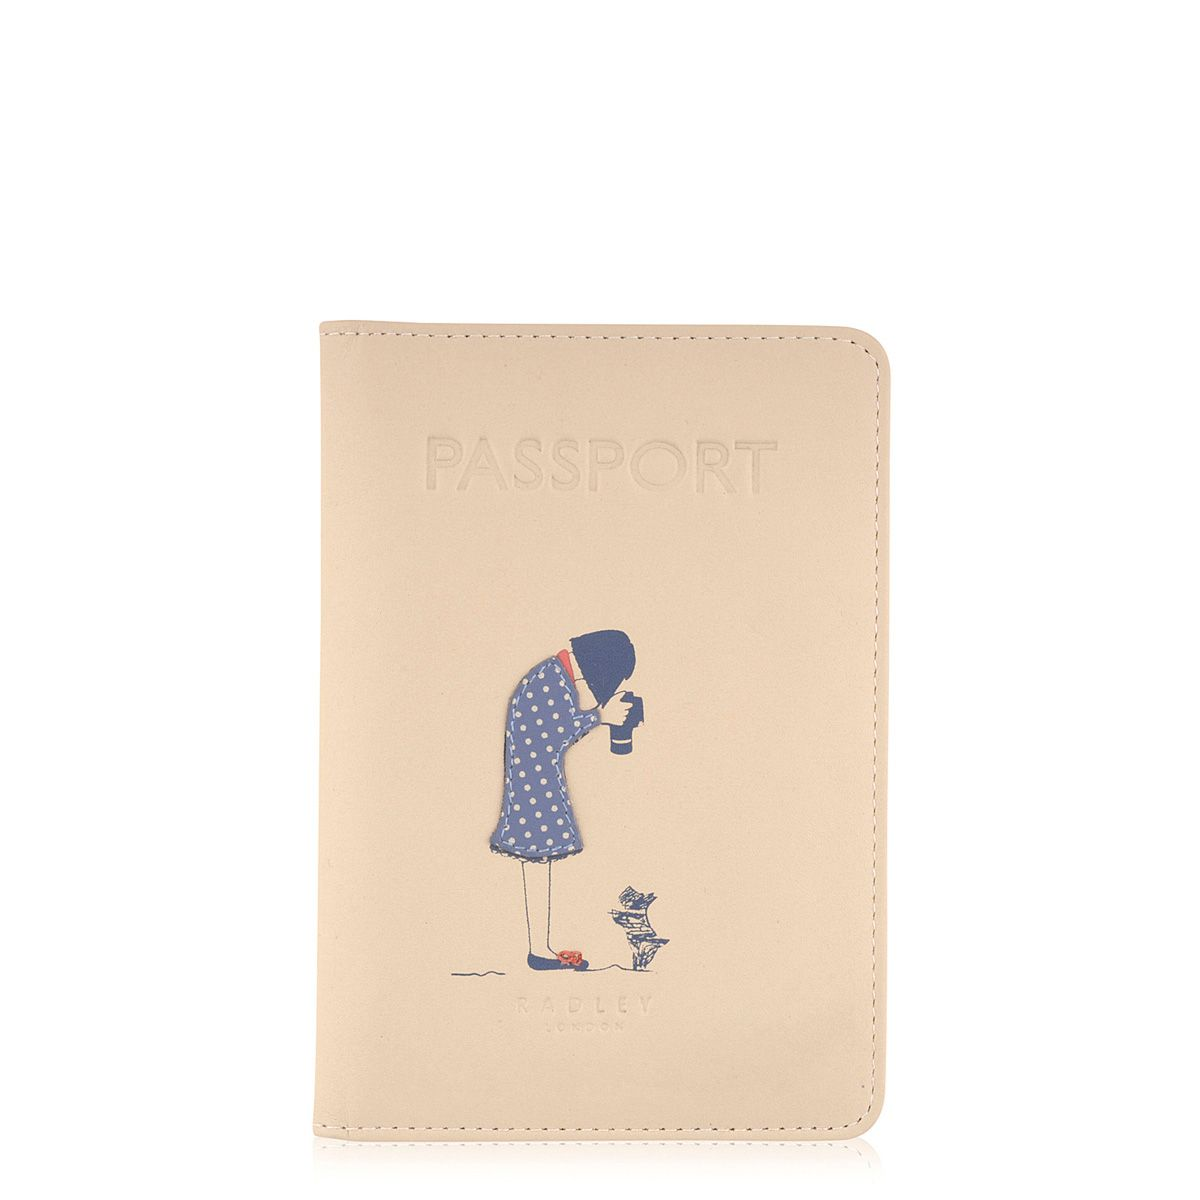 Snap happy cream passport cover